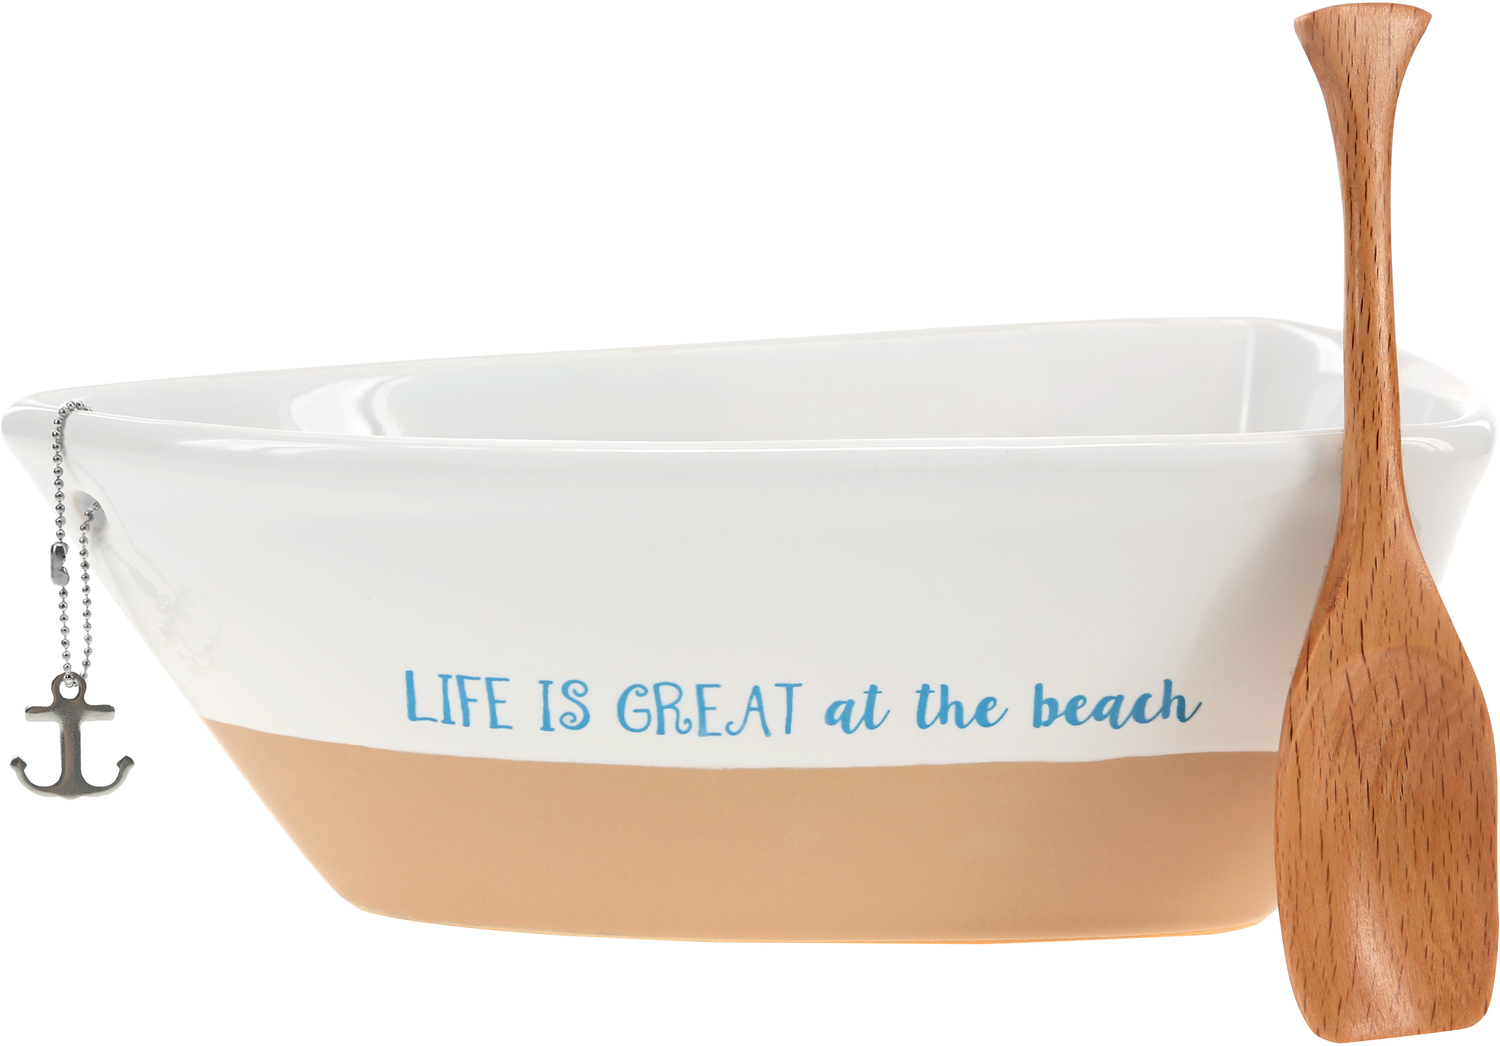 "At the Beach by We People - At the Beach - 7"" Boat Serving Dish with Oar"